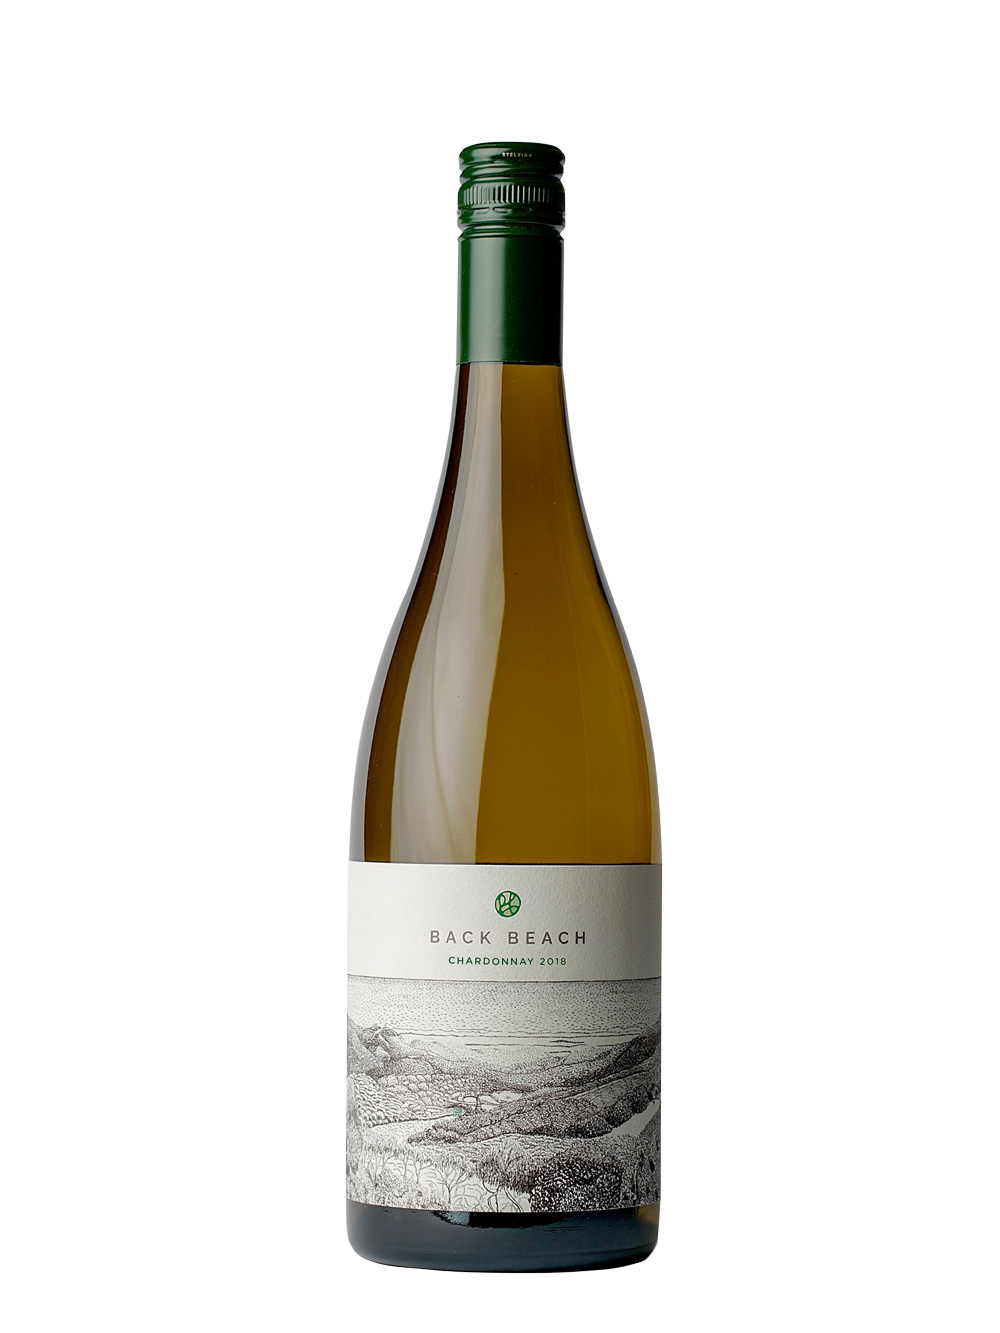 2018 Back Beach Chardonnay